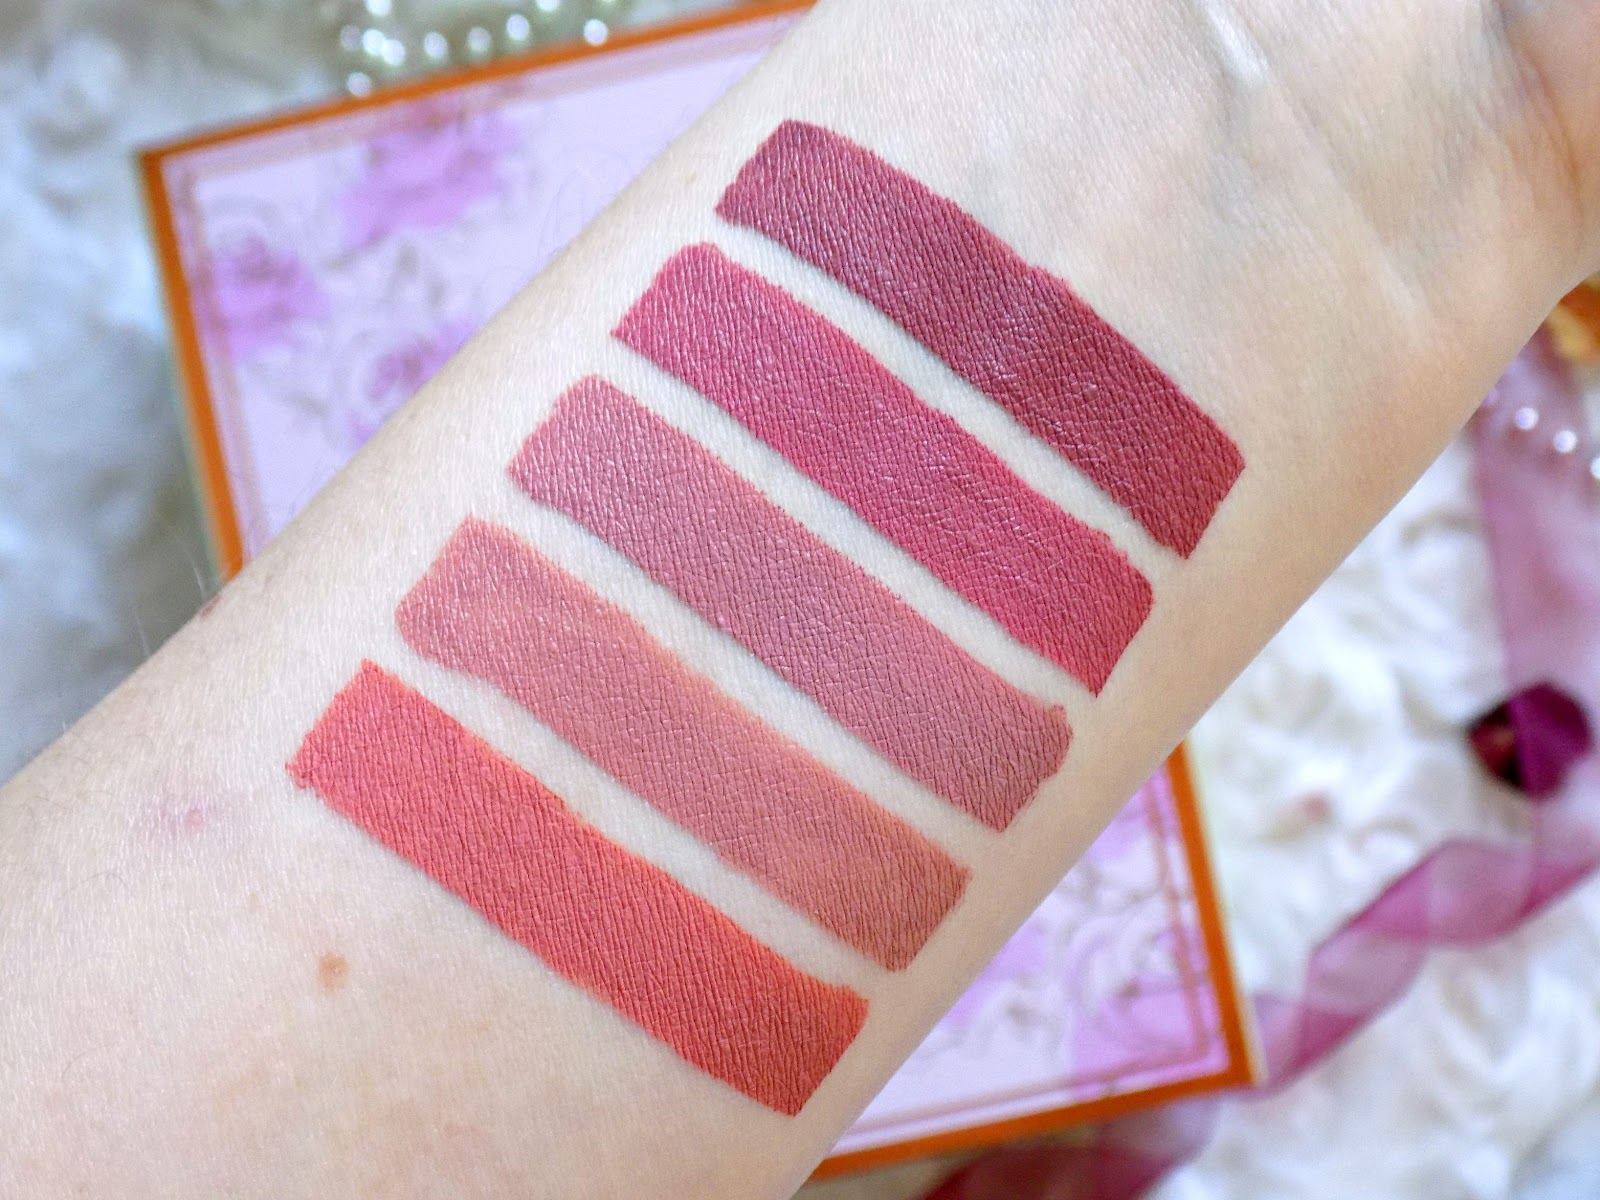 Pixi MatteLast Liquid Lip swatches